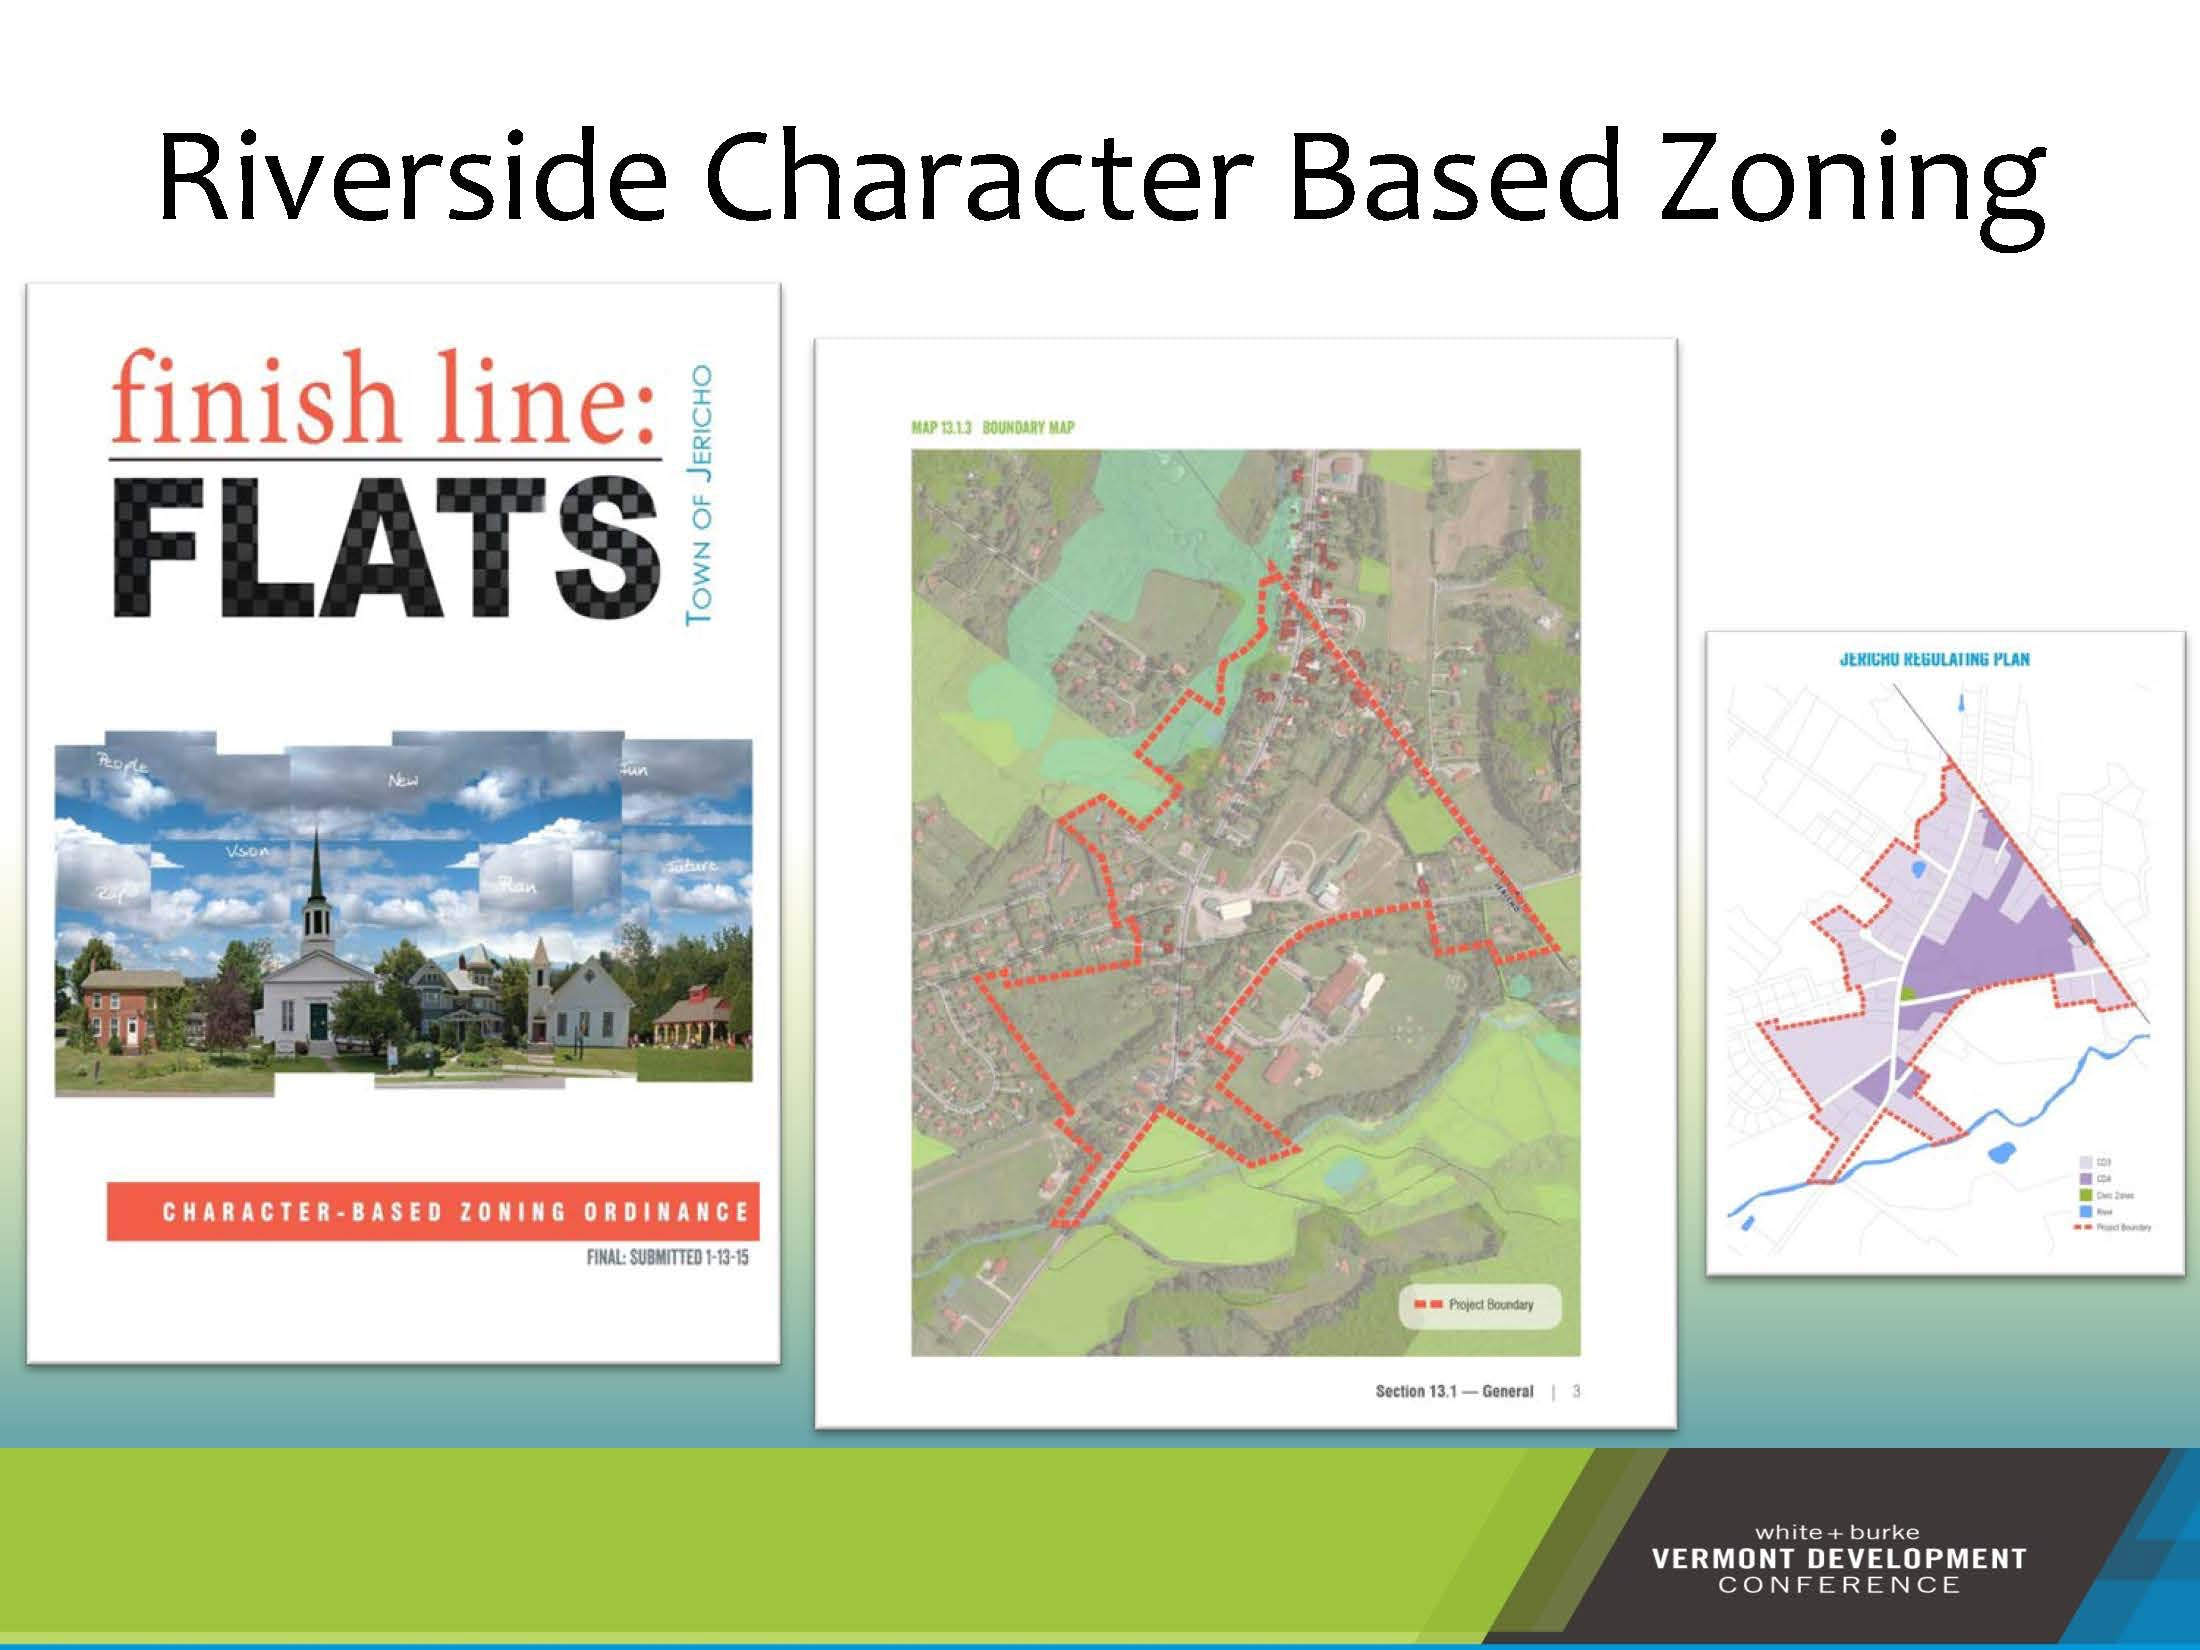 Charater Based Zoning Area